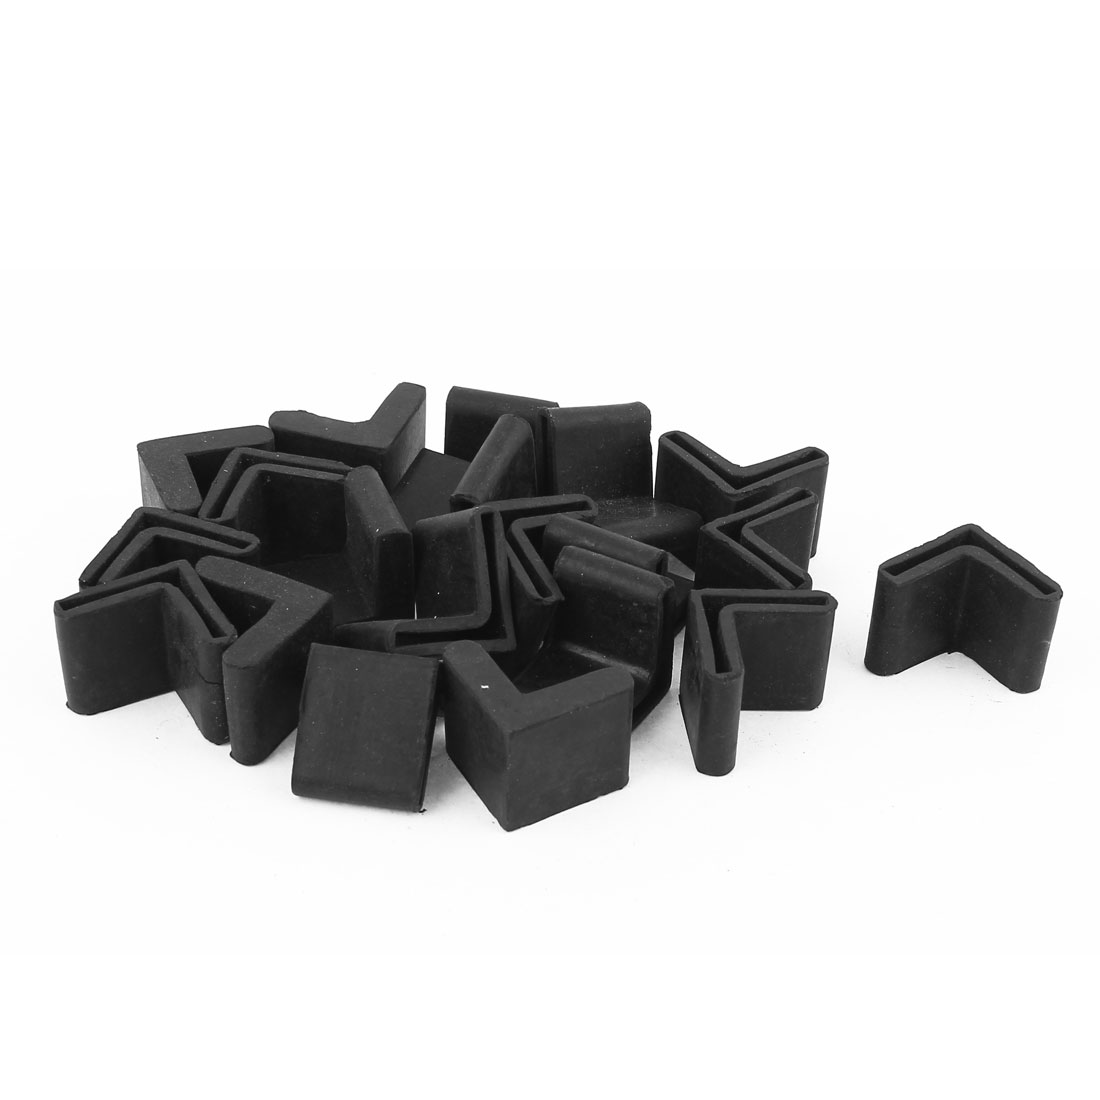 20 Pcs Triangle Shaped Furniture Table Corner Cushion Protector 25mmx25mm Black